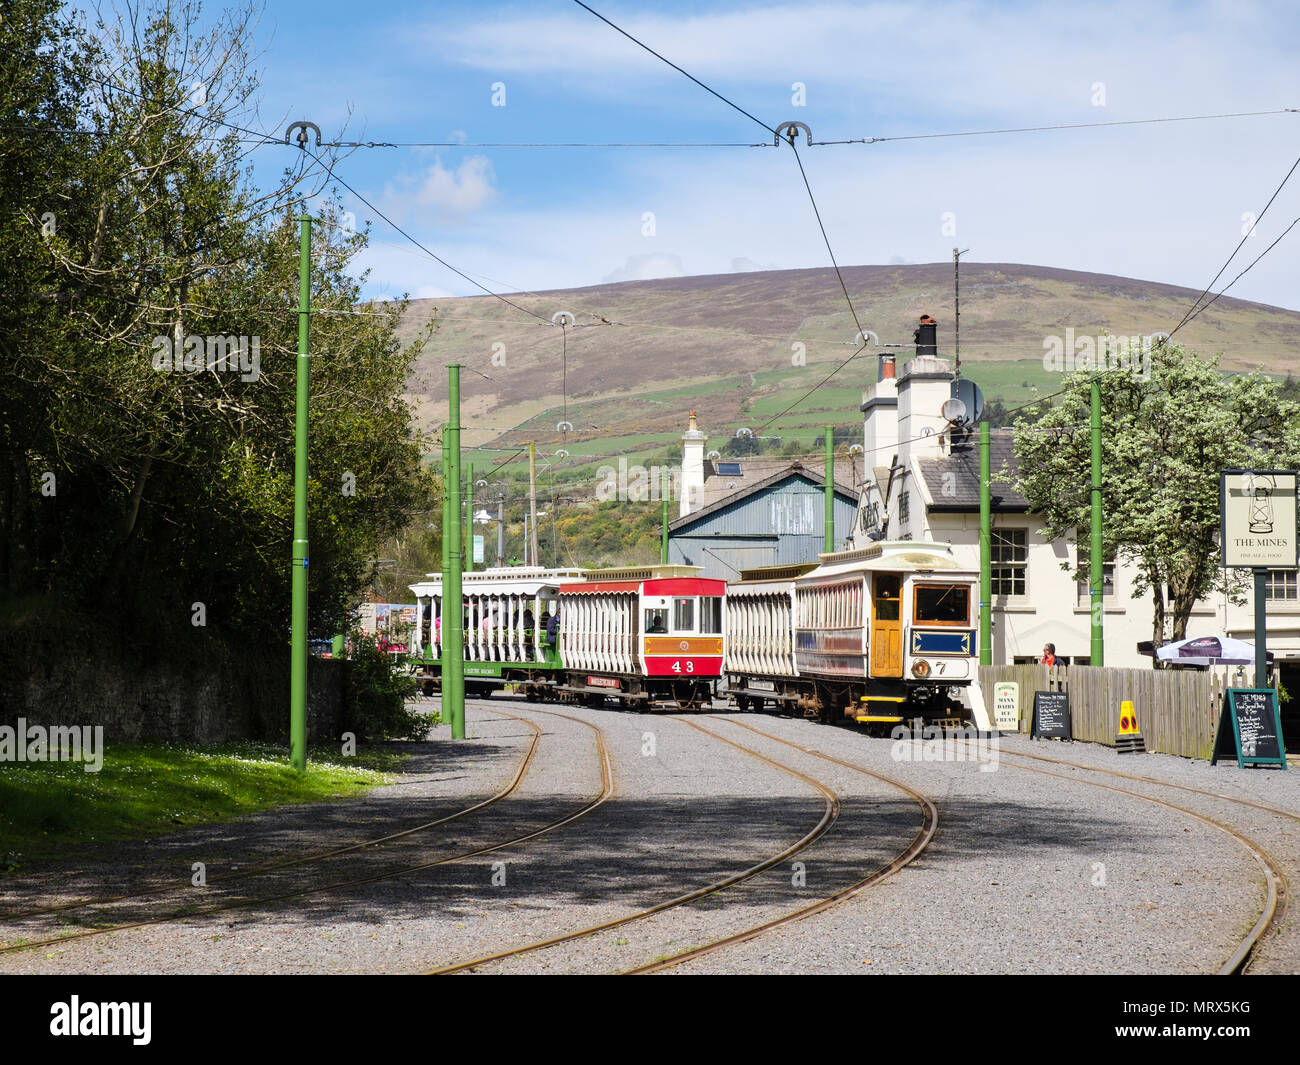 Manx Electric Railway trains passing near station in Laxey, Isle of Man, British Isles Stock Photo